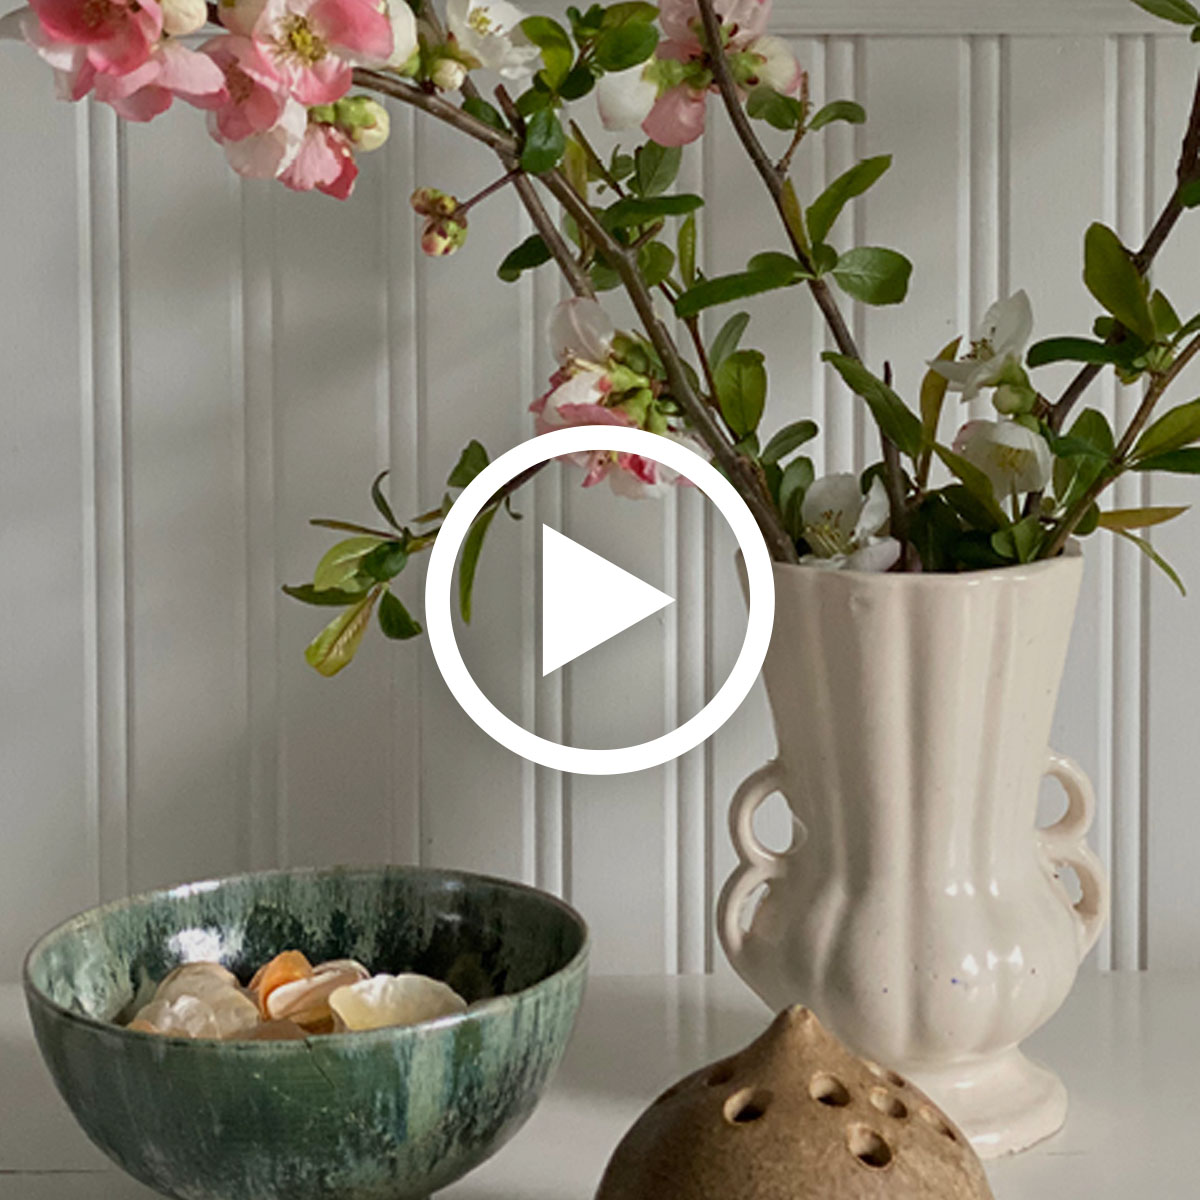 Luxe At Home With Bennett Leifer, Bella Mancini and Dan Mazzarini